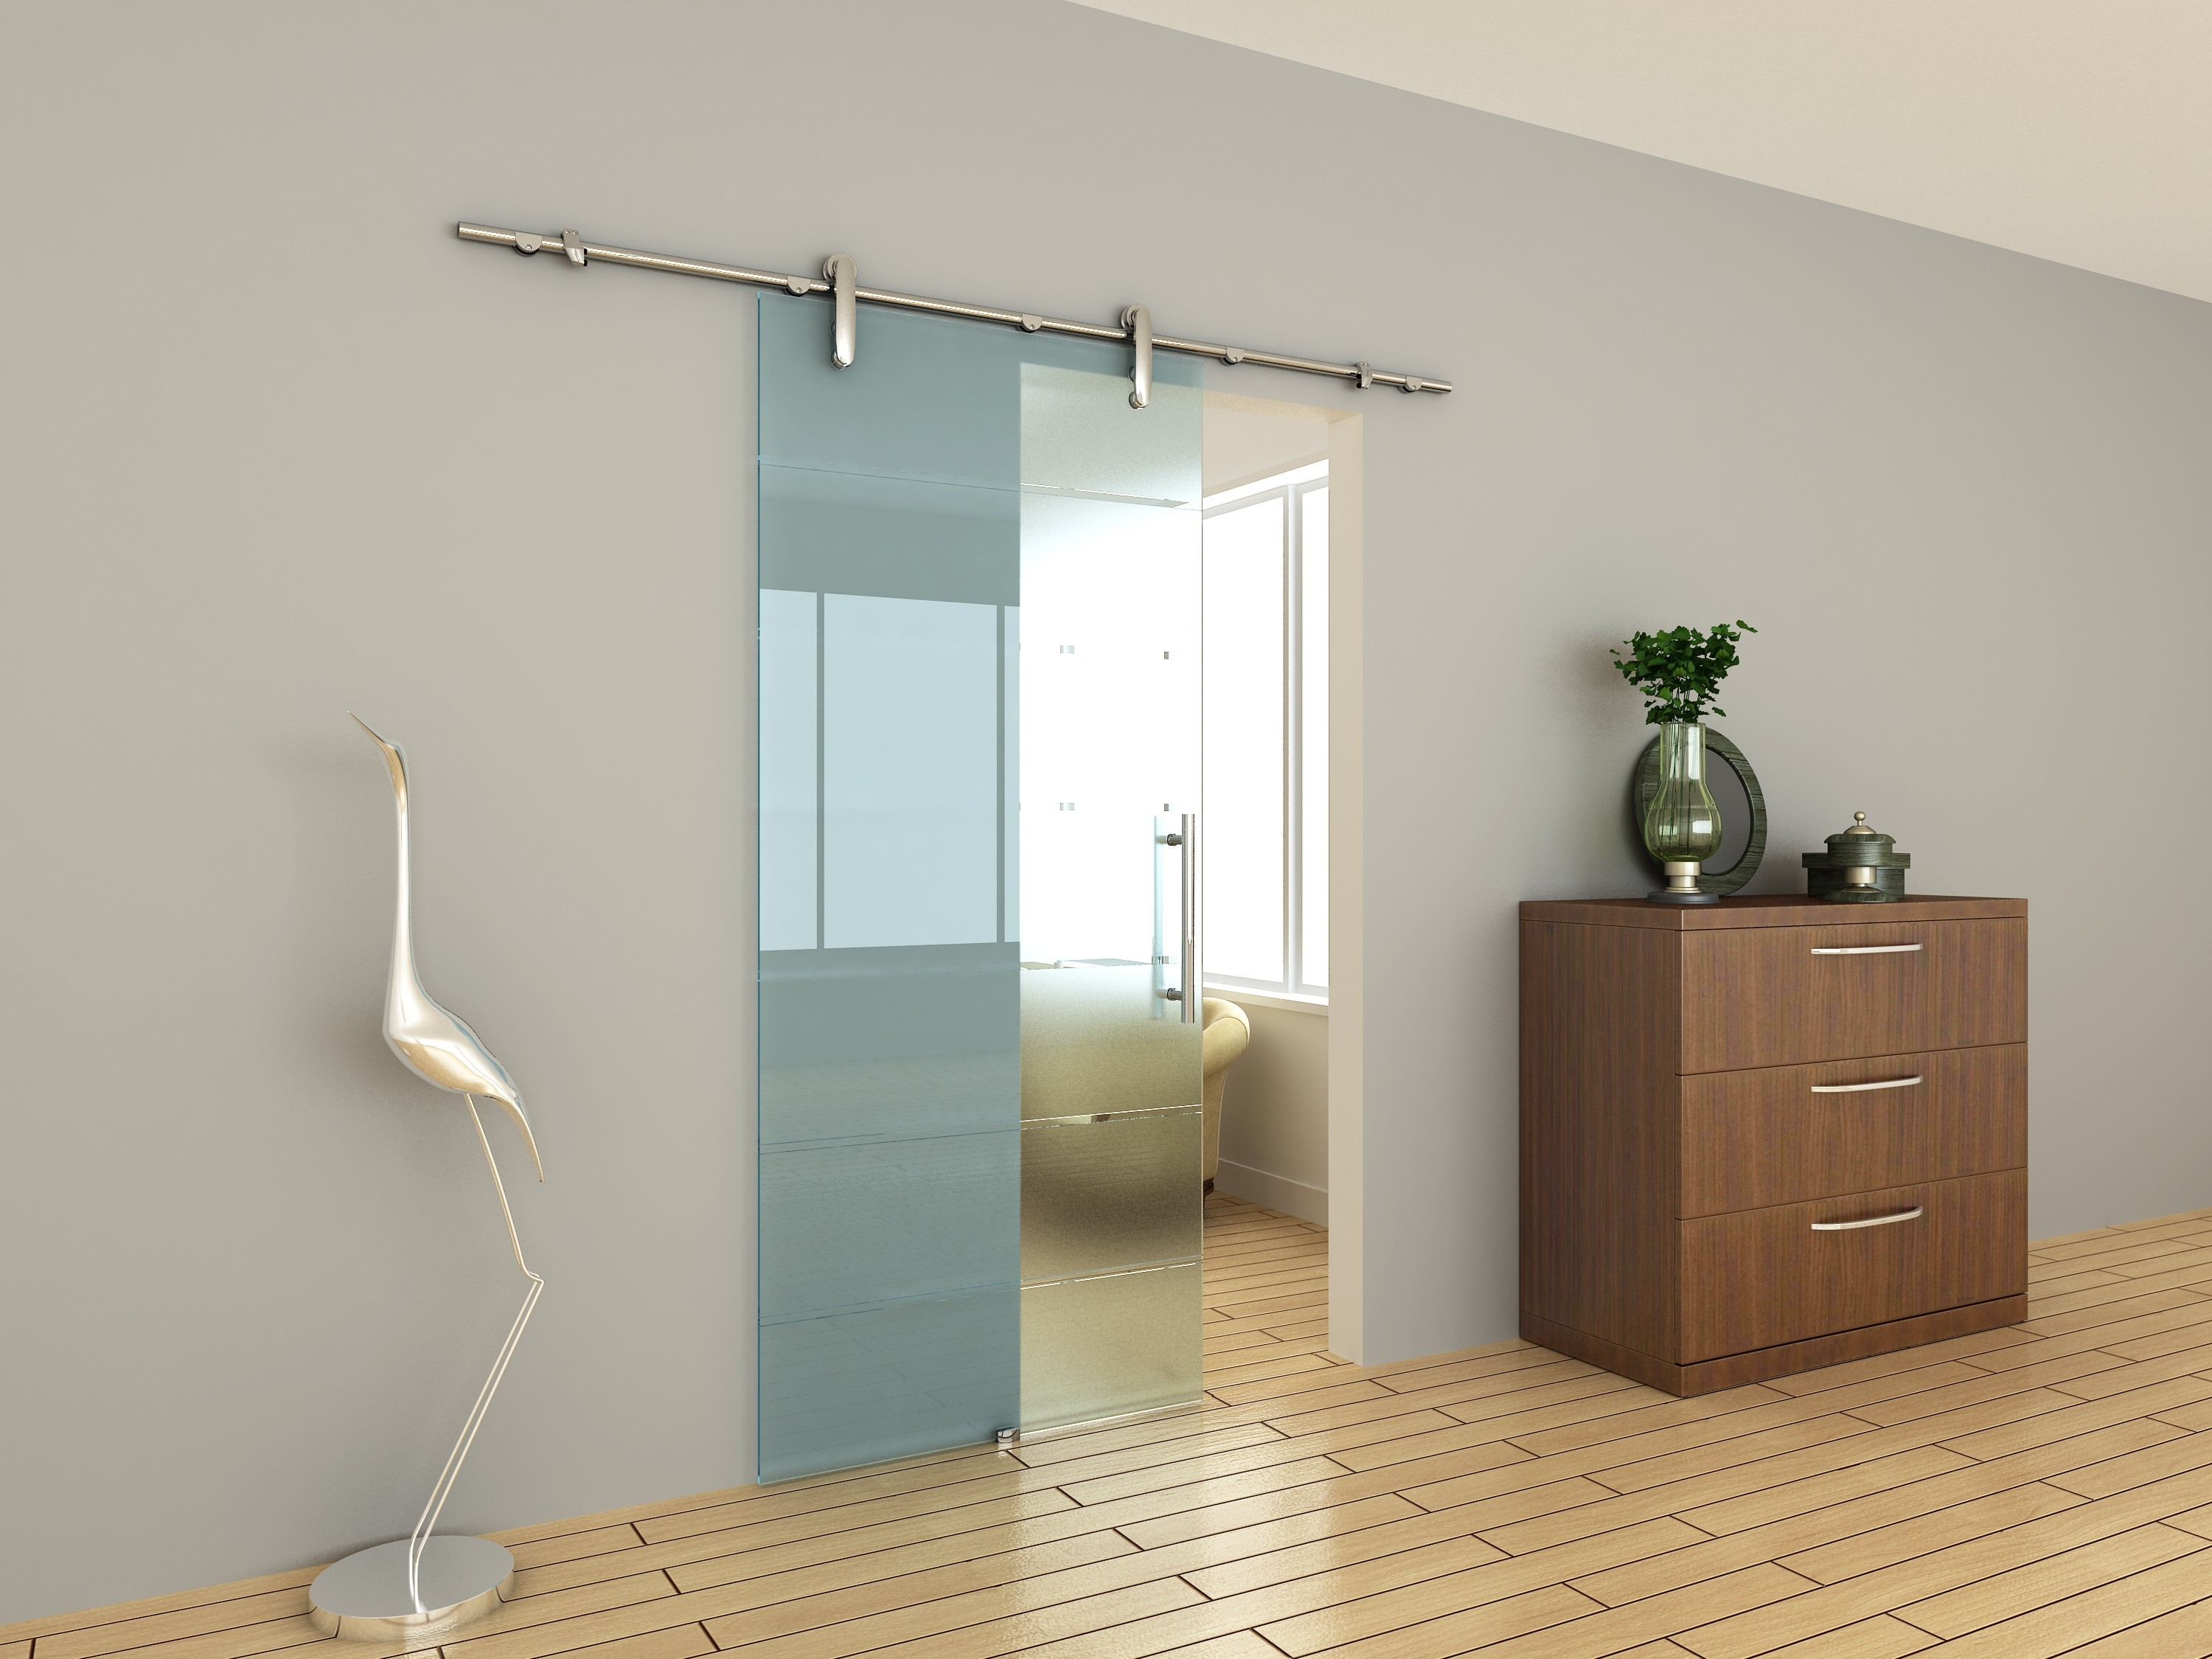 Sliding Glass Bathroom Entry Door